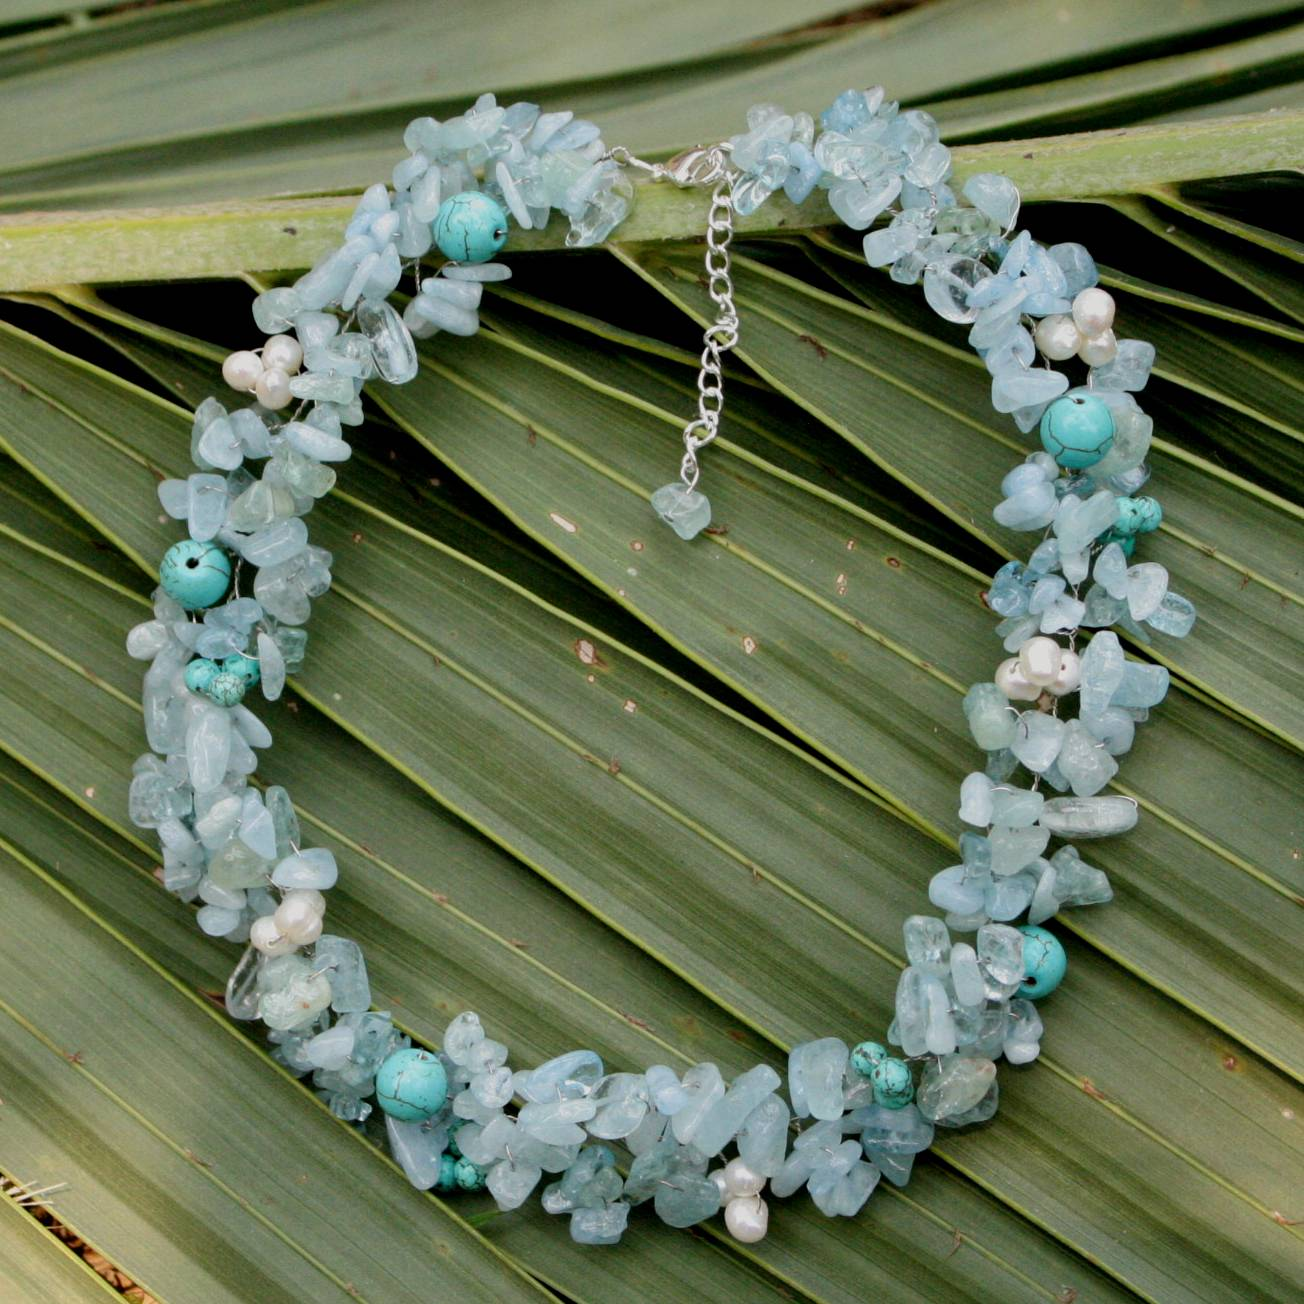 Sensation Beaded Aquamarine Necklace from Thailand Pearls quartz stainless steel what are birthstones